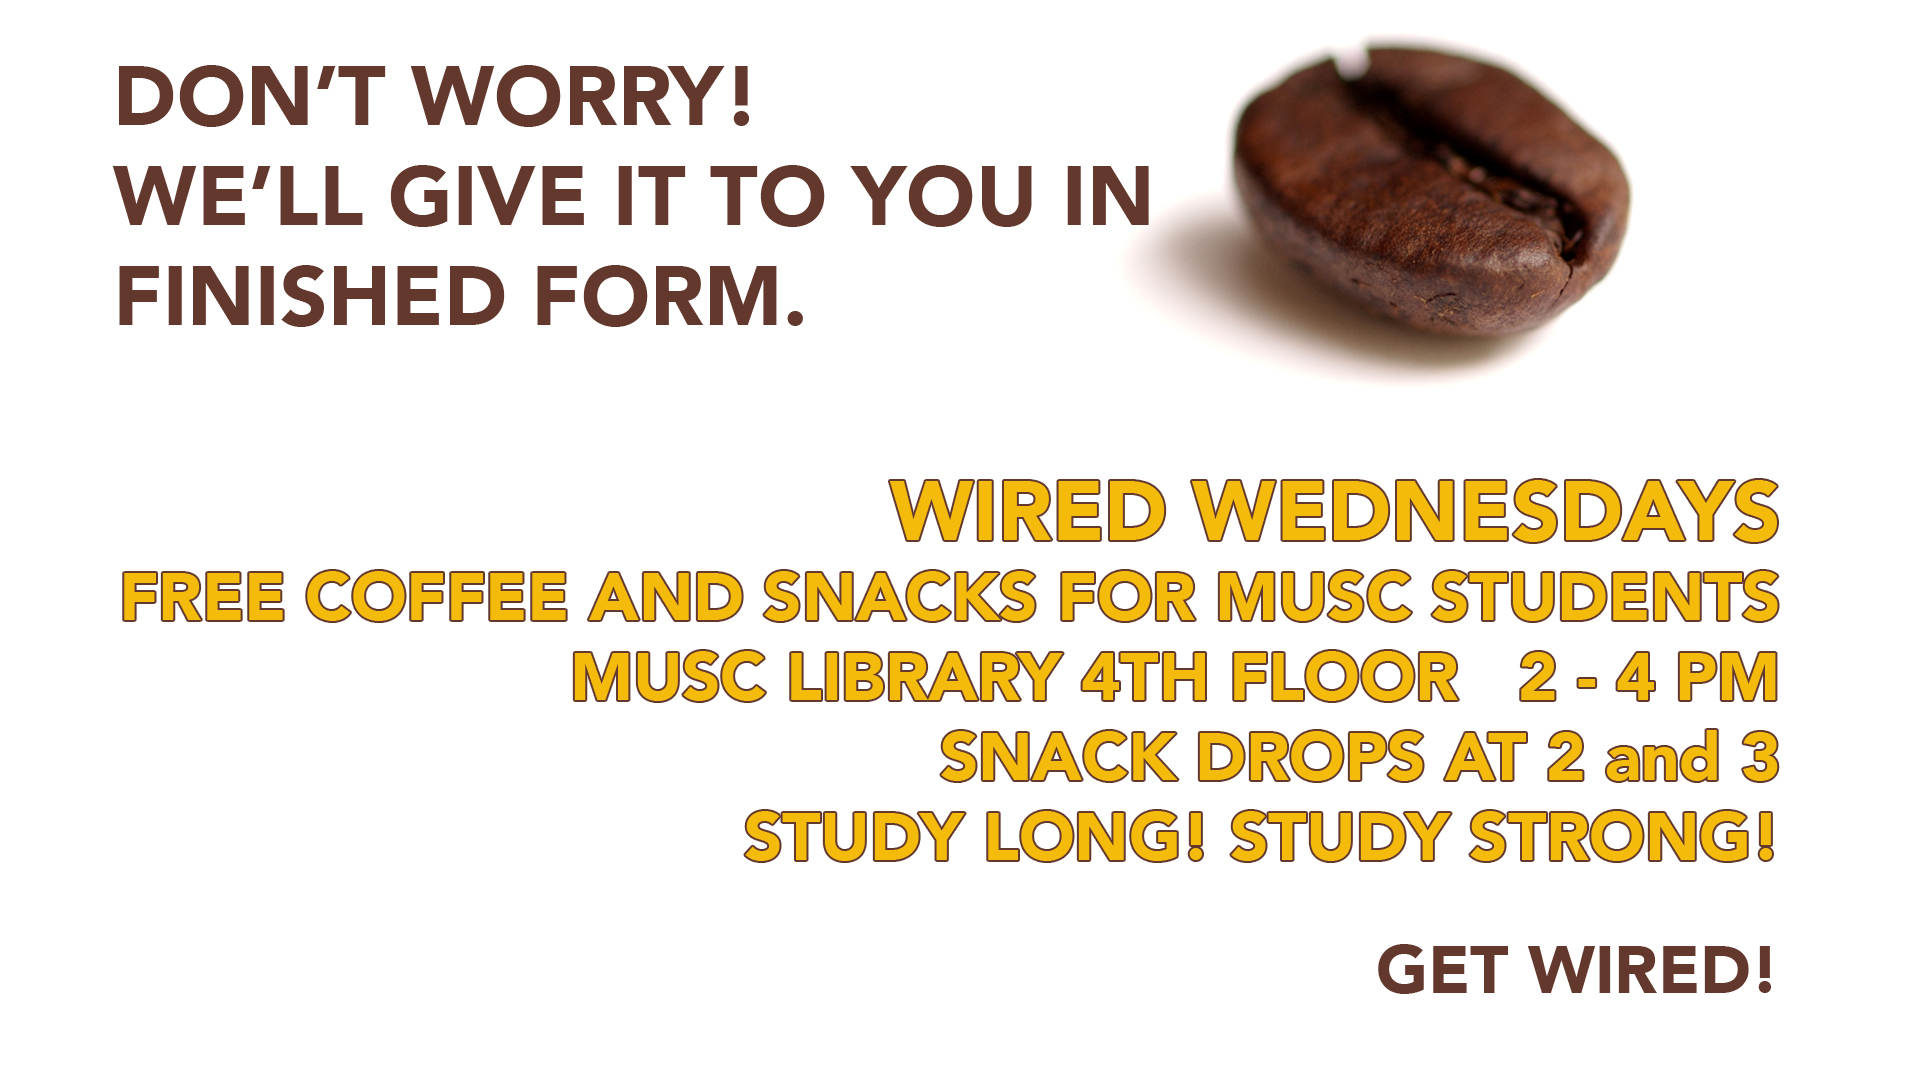 Advertisement for Wired Wednesdays